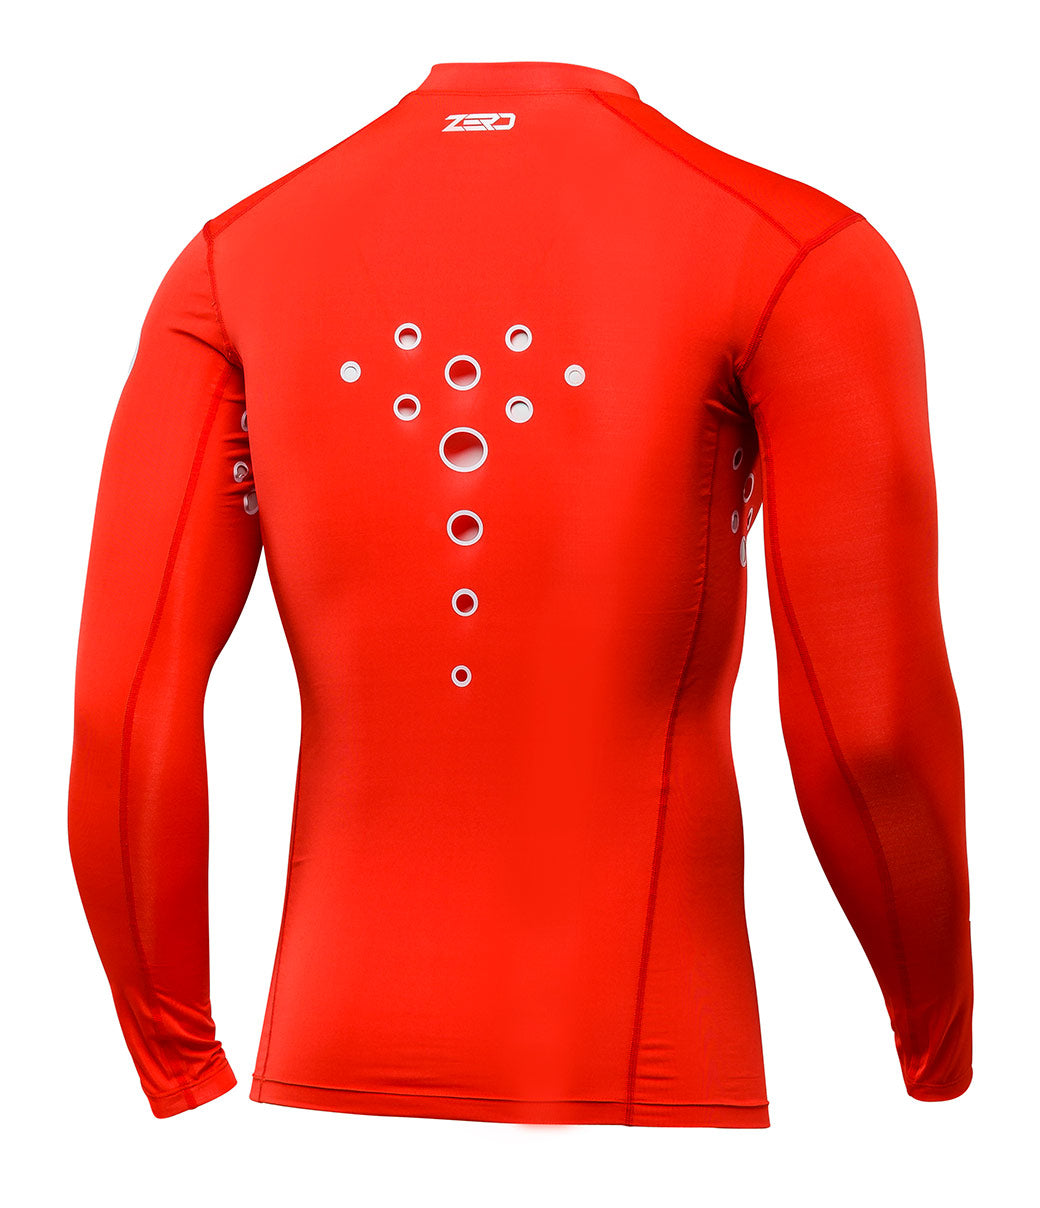 Zero Laser Cut Compression Jersey - Red